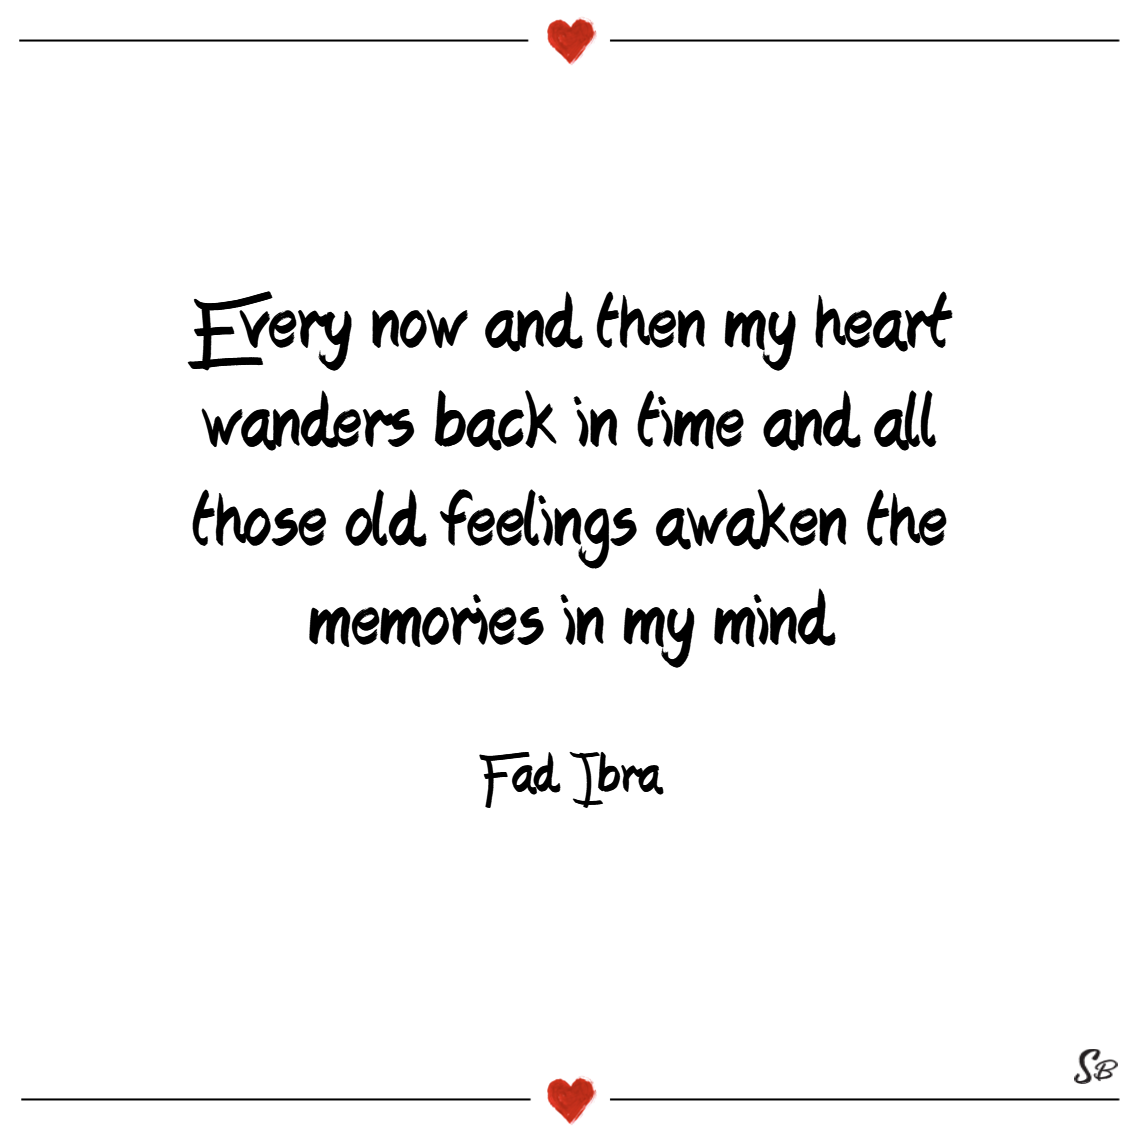 Every now and then my heart wanders back in time and all those old feelings awaken the memories in my mind. – fad ibra